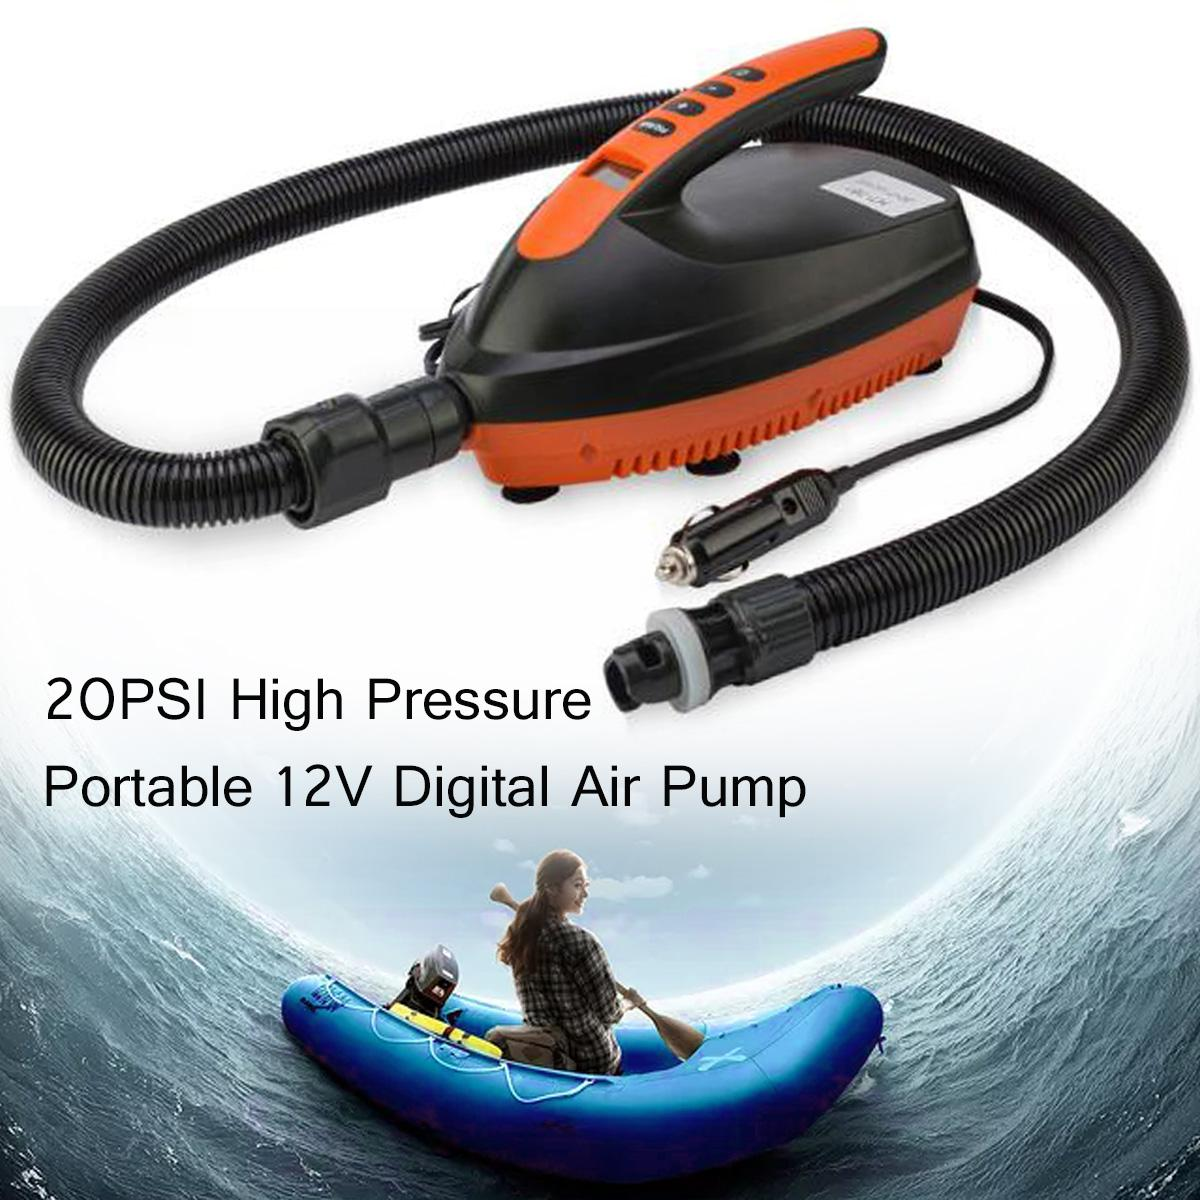 12V 16PSI Portable Car Inflatable Pump High Pressure Portable Digital  Electric Air Pump With 6 Nozzles for SUP Kayak Paddle Boar